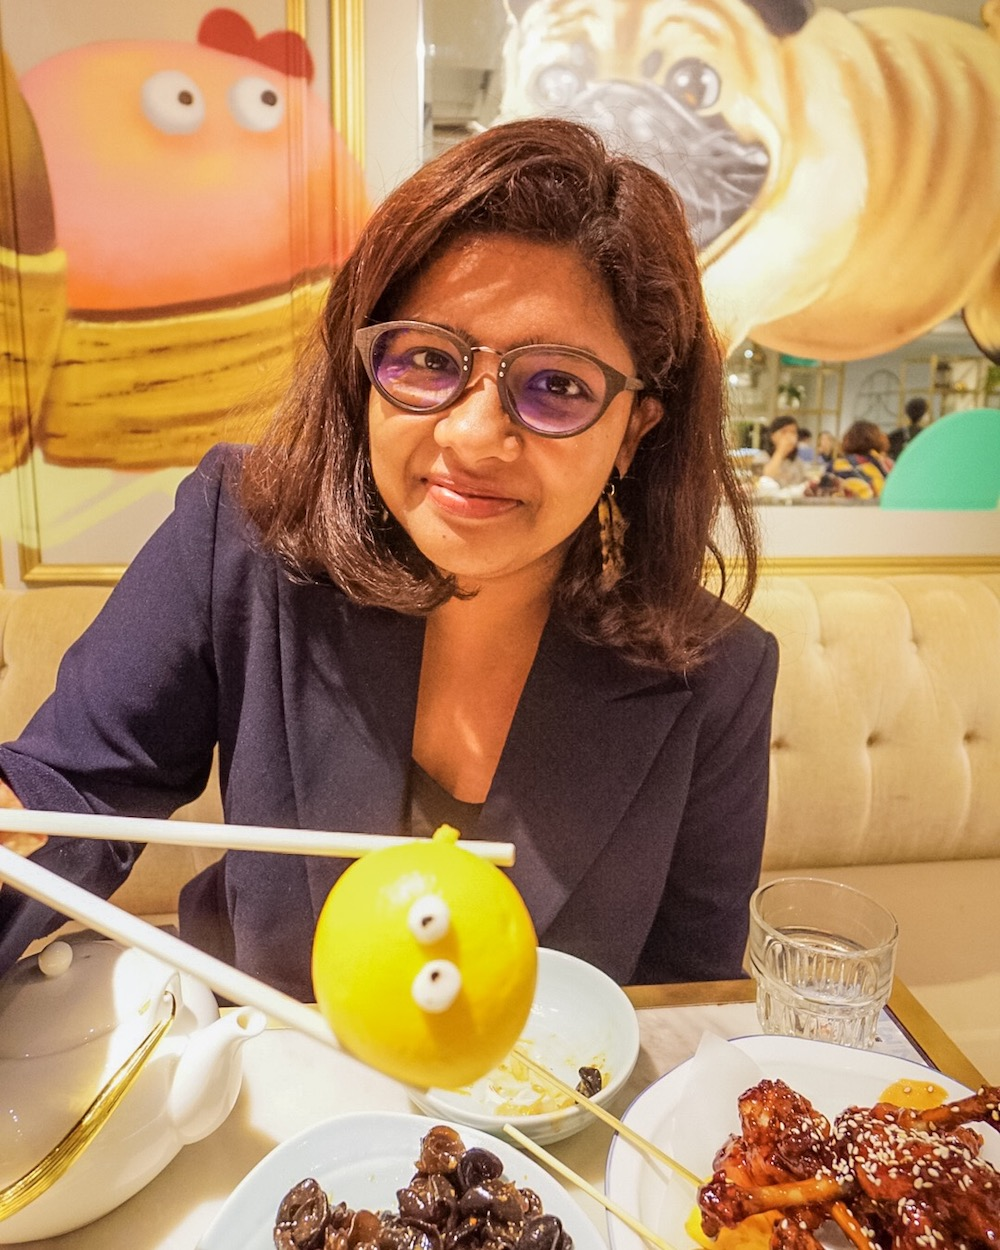 Passport to People Interiew Ruchi and Avi Second Breakfast